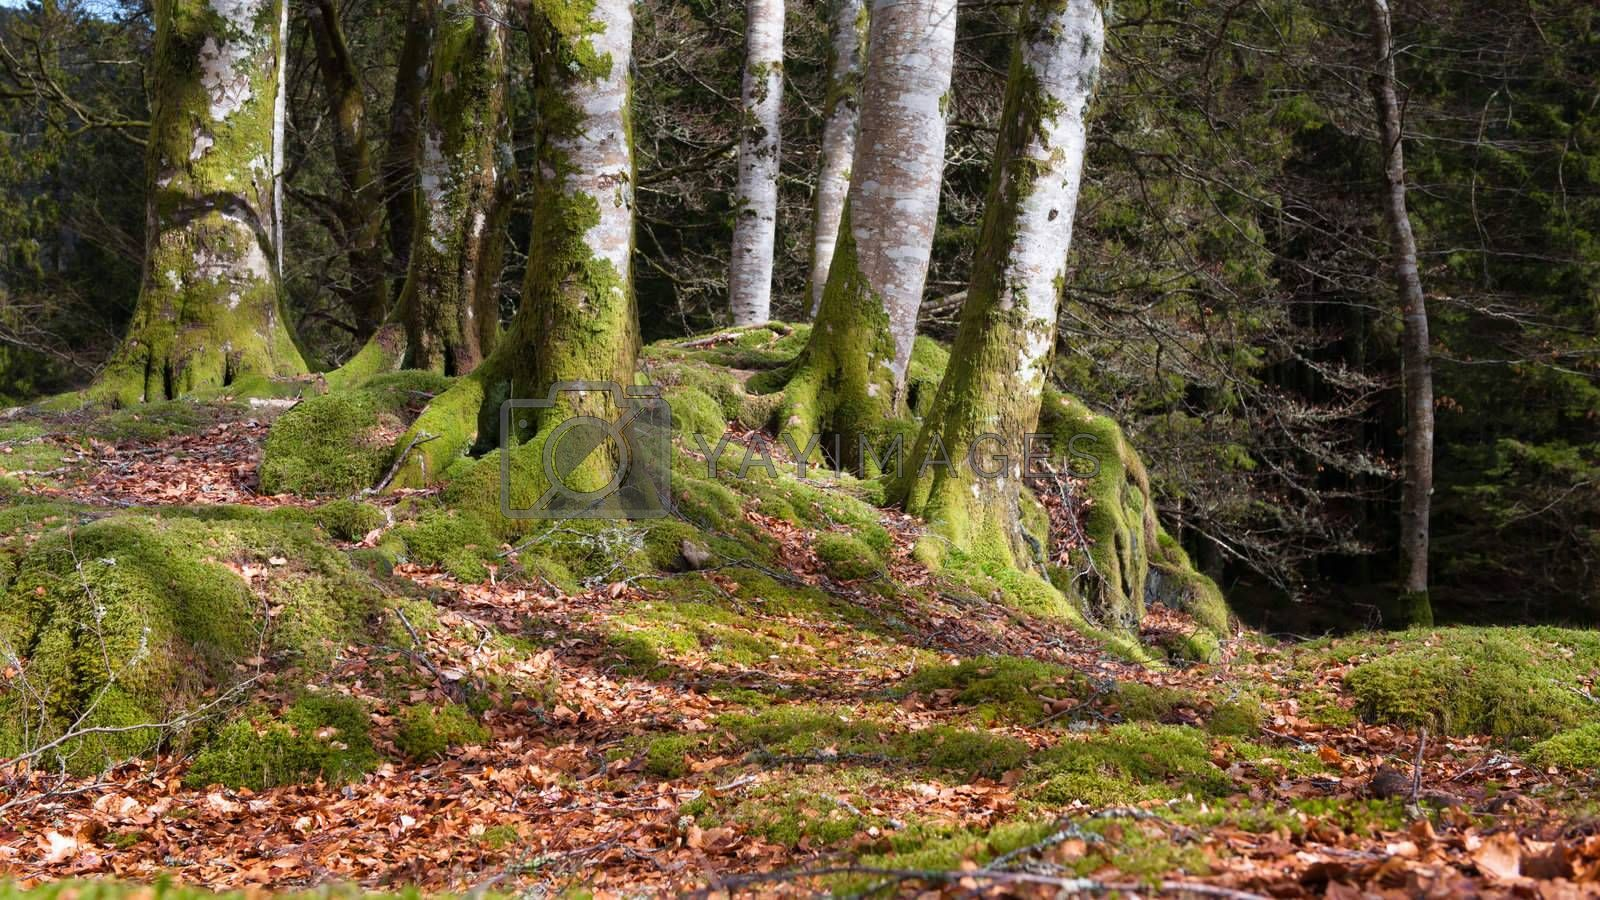 Ceveral trees in Norwegian forrest at autumn